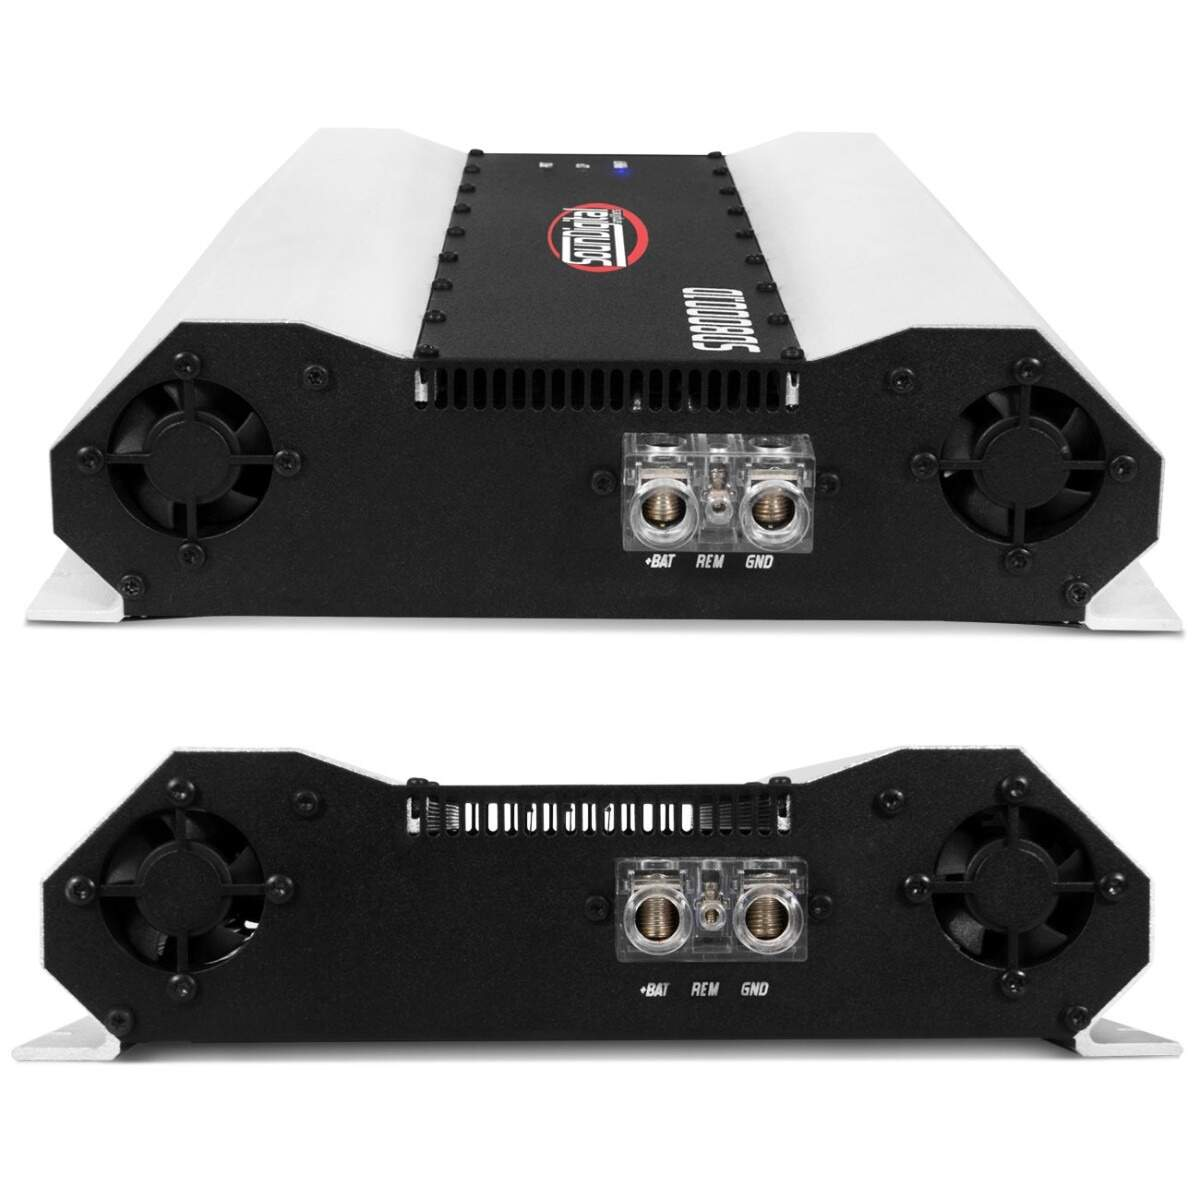 SD8000.1D - Amplificador Digital Soundigital 8000W Rms 1 Ohm ou 2 Ohms